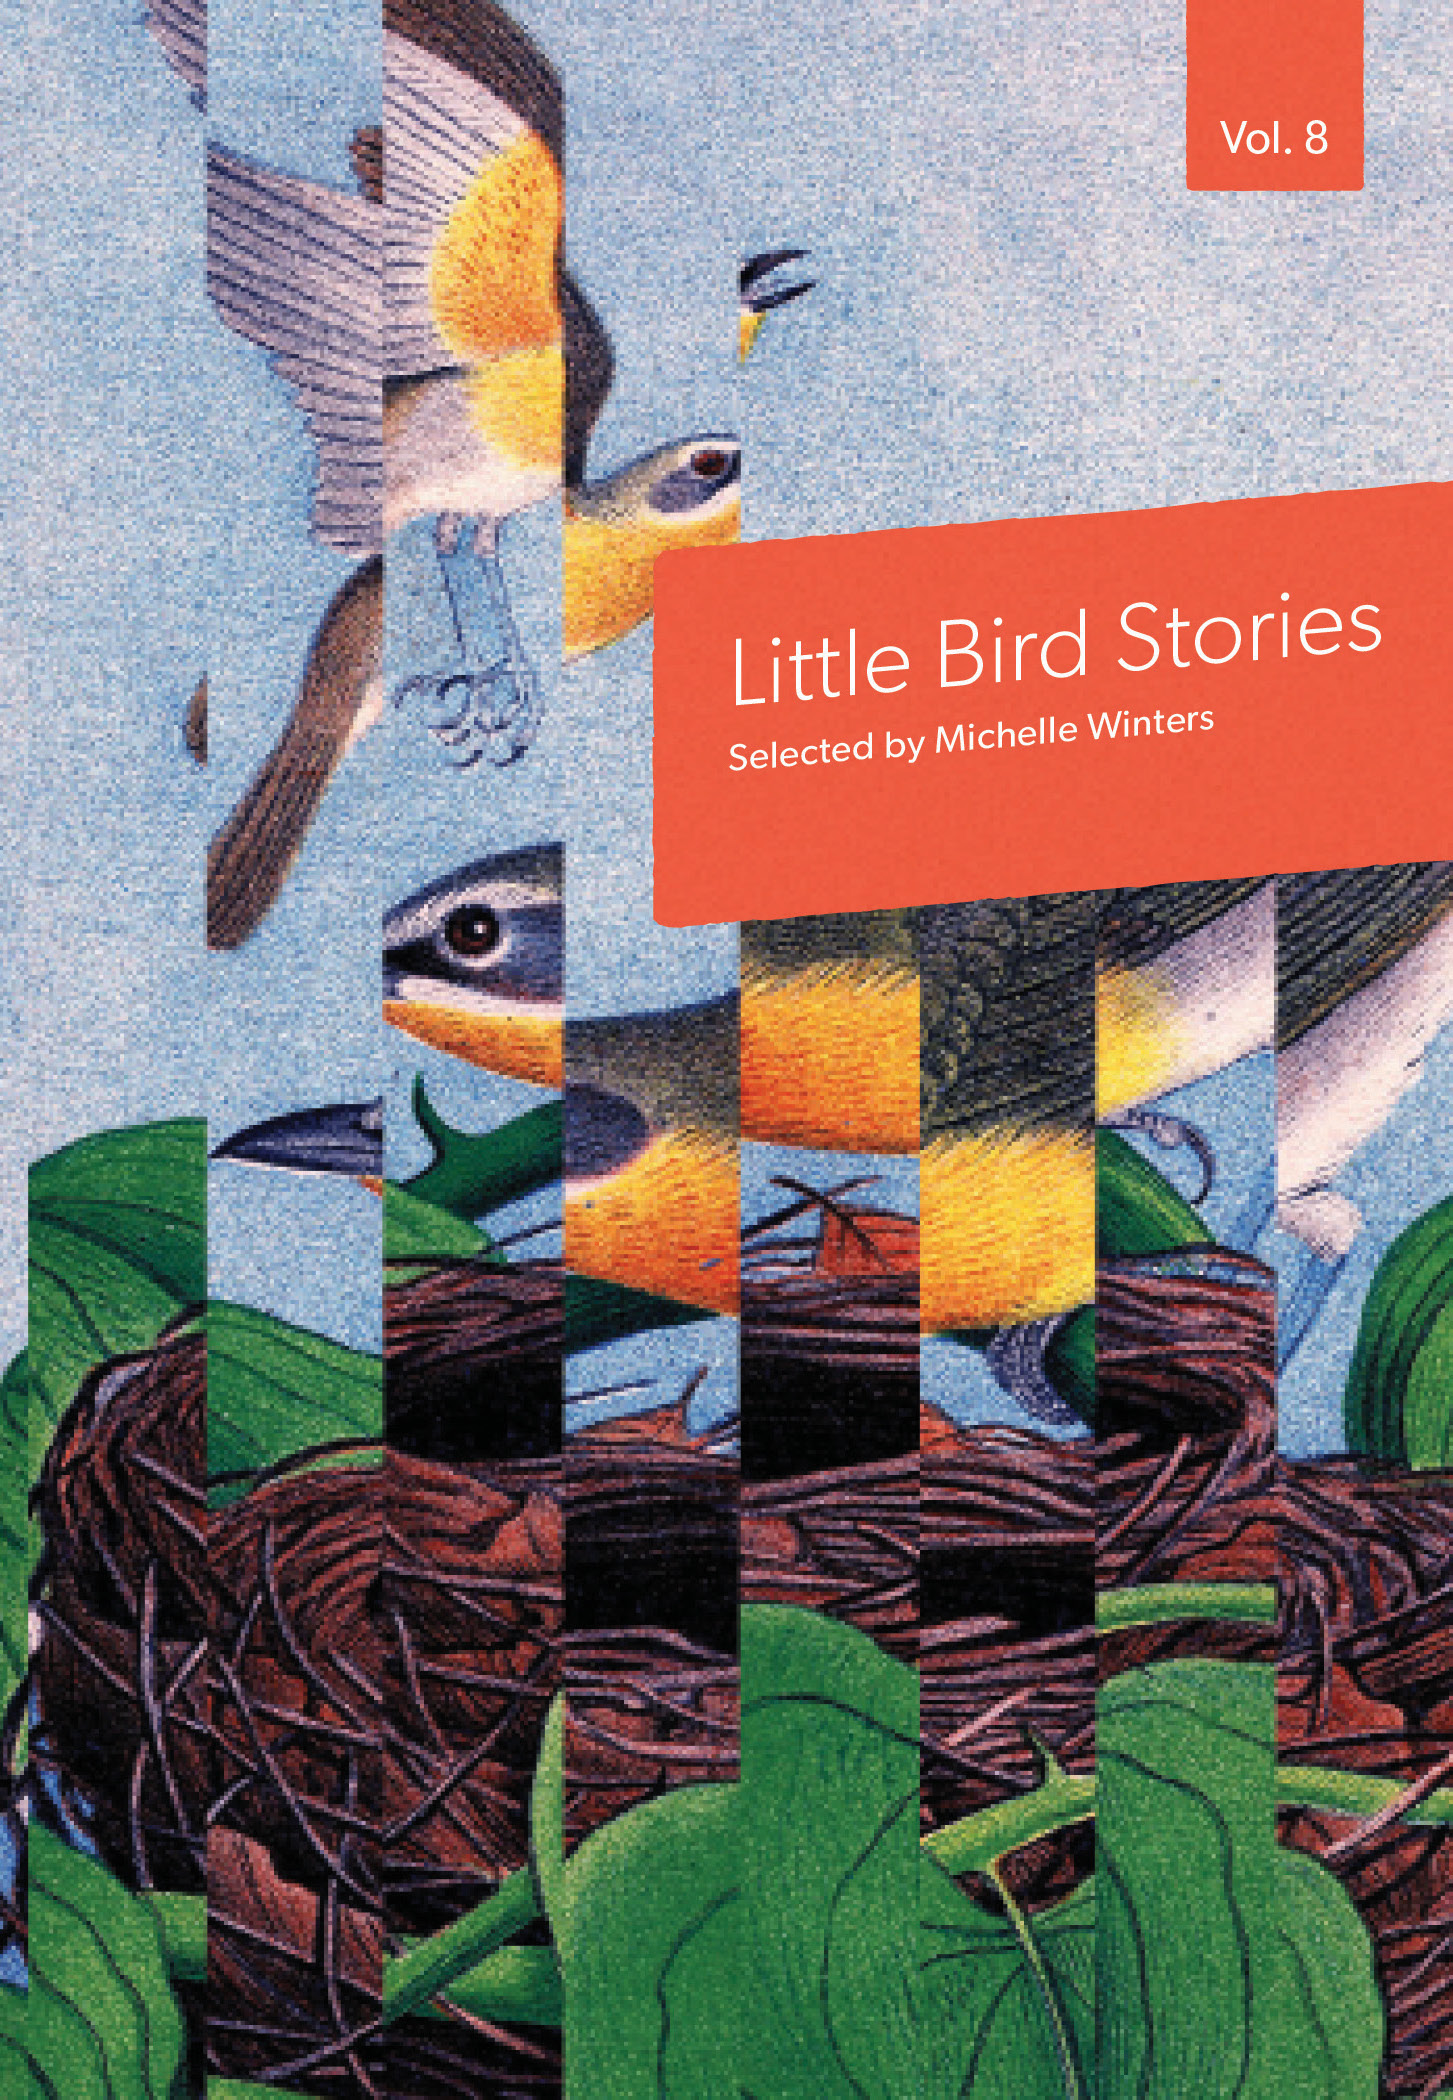 Little Bird Stories, Volume 8